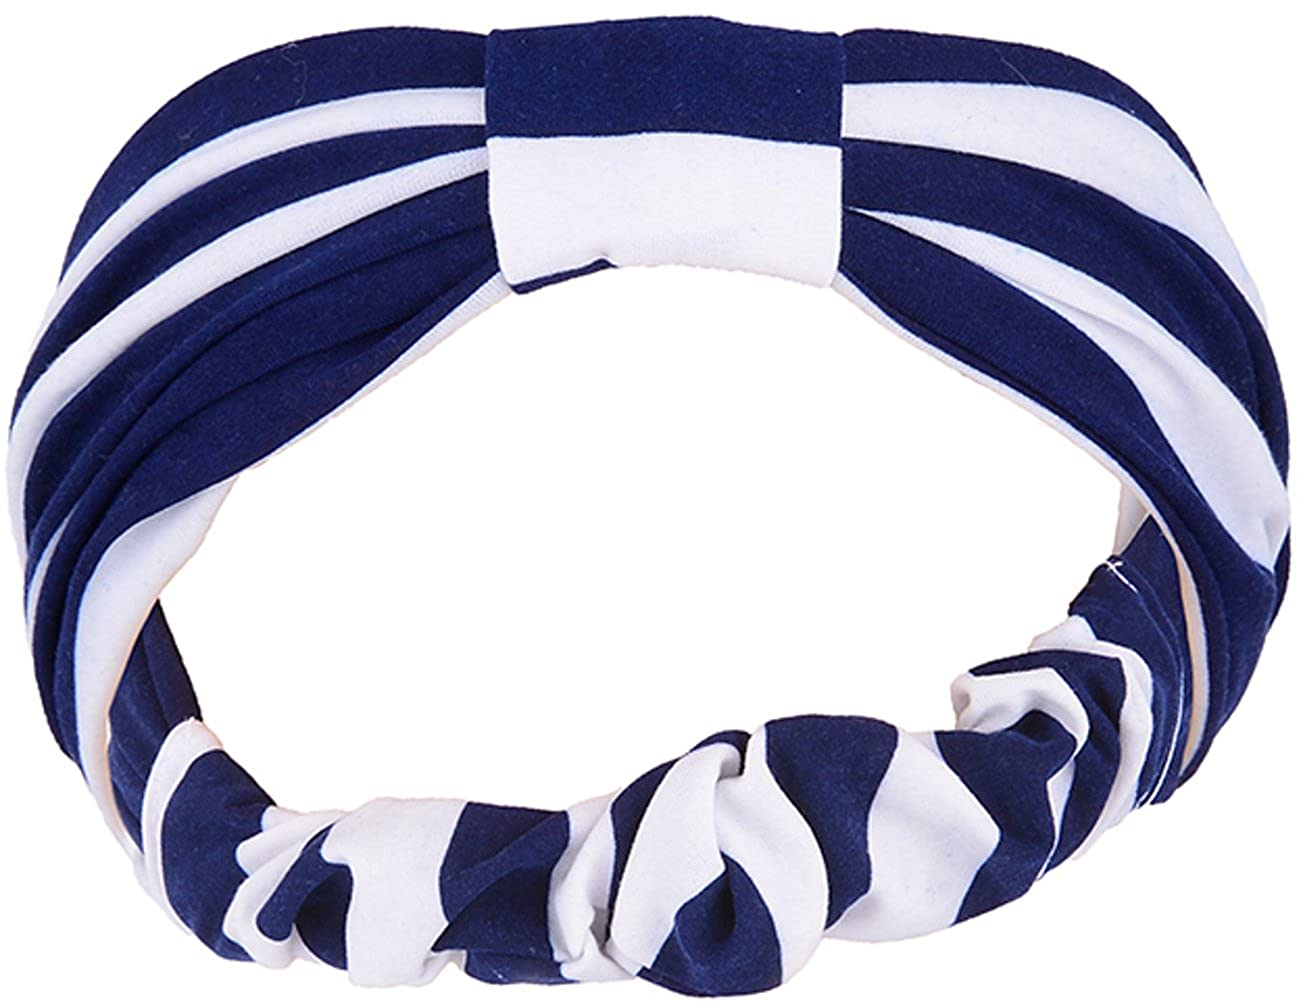 Blau Rockabilly Stirnband Striped ELLI Sailor STREIFEN Haarband